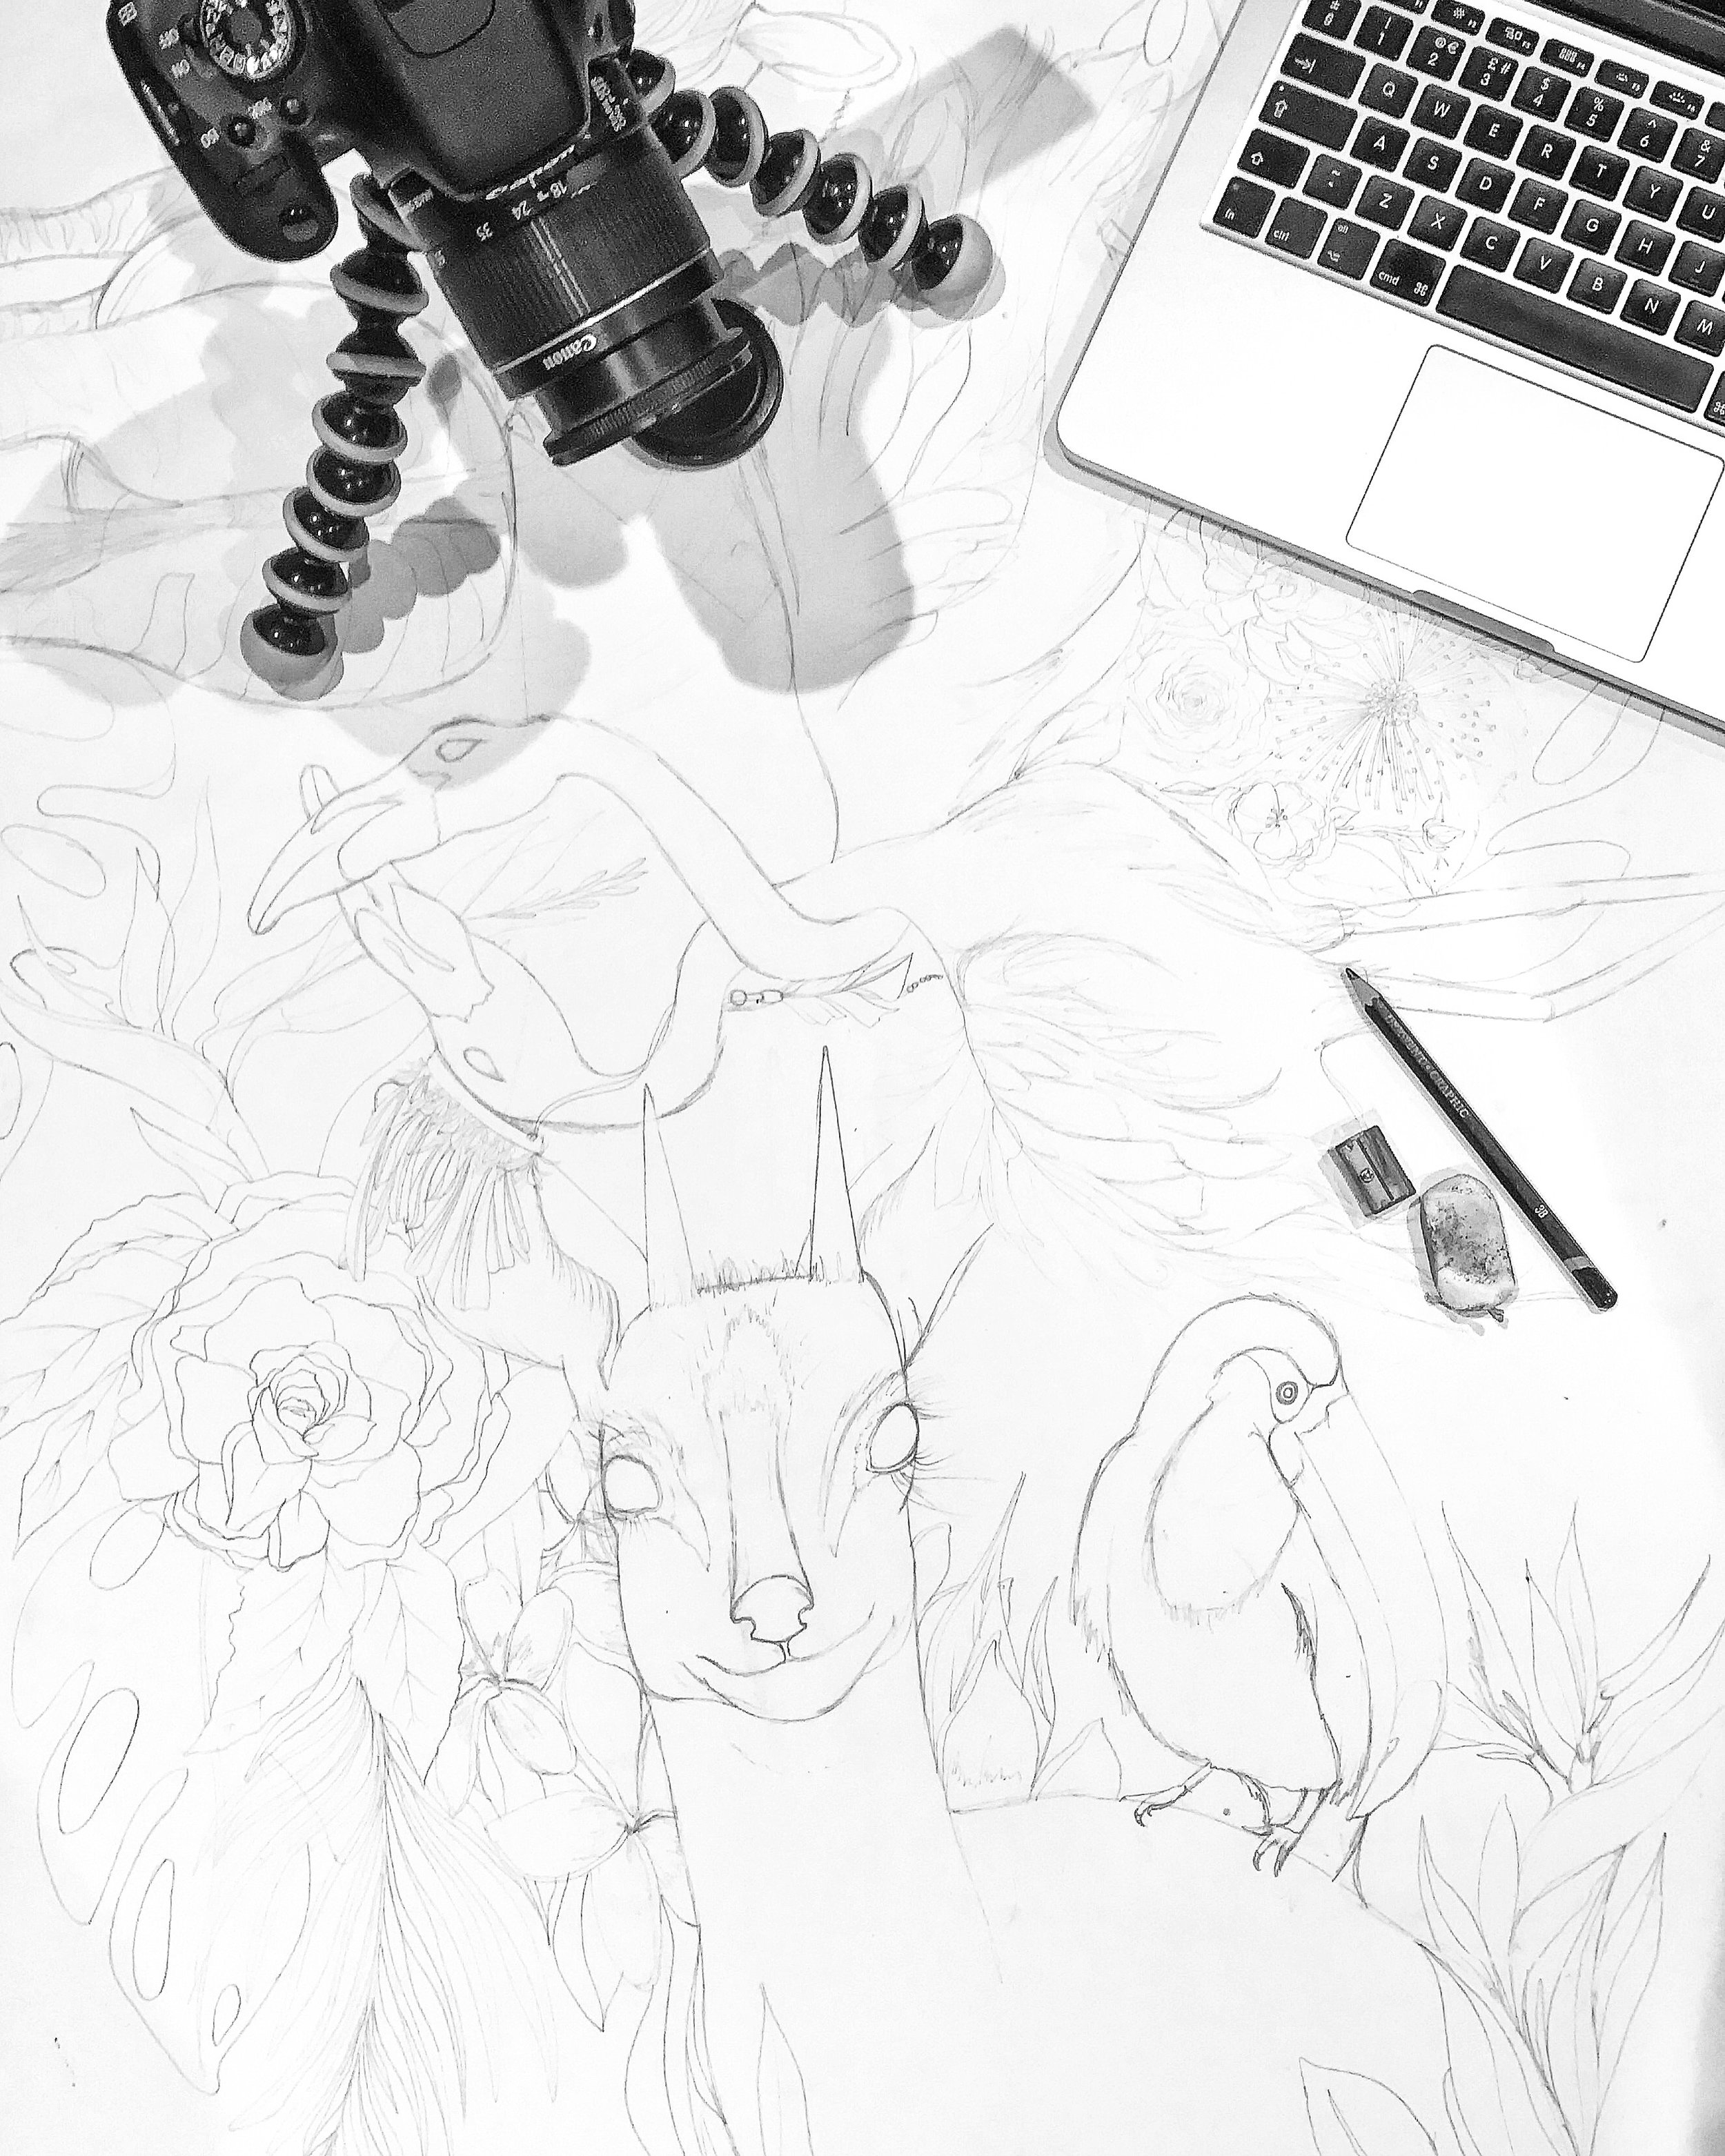 UNTITLED PIECE - The main piece i'm currently working on is this huge, A1 tropical illustration.I actually started pencilling it out last summer but never had chance to finish it, until this summer when I dug it back out and have made it my goal once more to complete it. I've also been filming the whole process so i'll be posting a full video once i've completed it.So far some flamingos, a zebra, an African deer and a toucan have appeared amongst tropical foliage and blooms.The plan is to make this as bright and intricate as possible but i'm still yet to think of a name. Hopefully as the full picture emerges, one will come to mind.Feel free to leave me some suggestions and follow more progress over on Instagram.